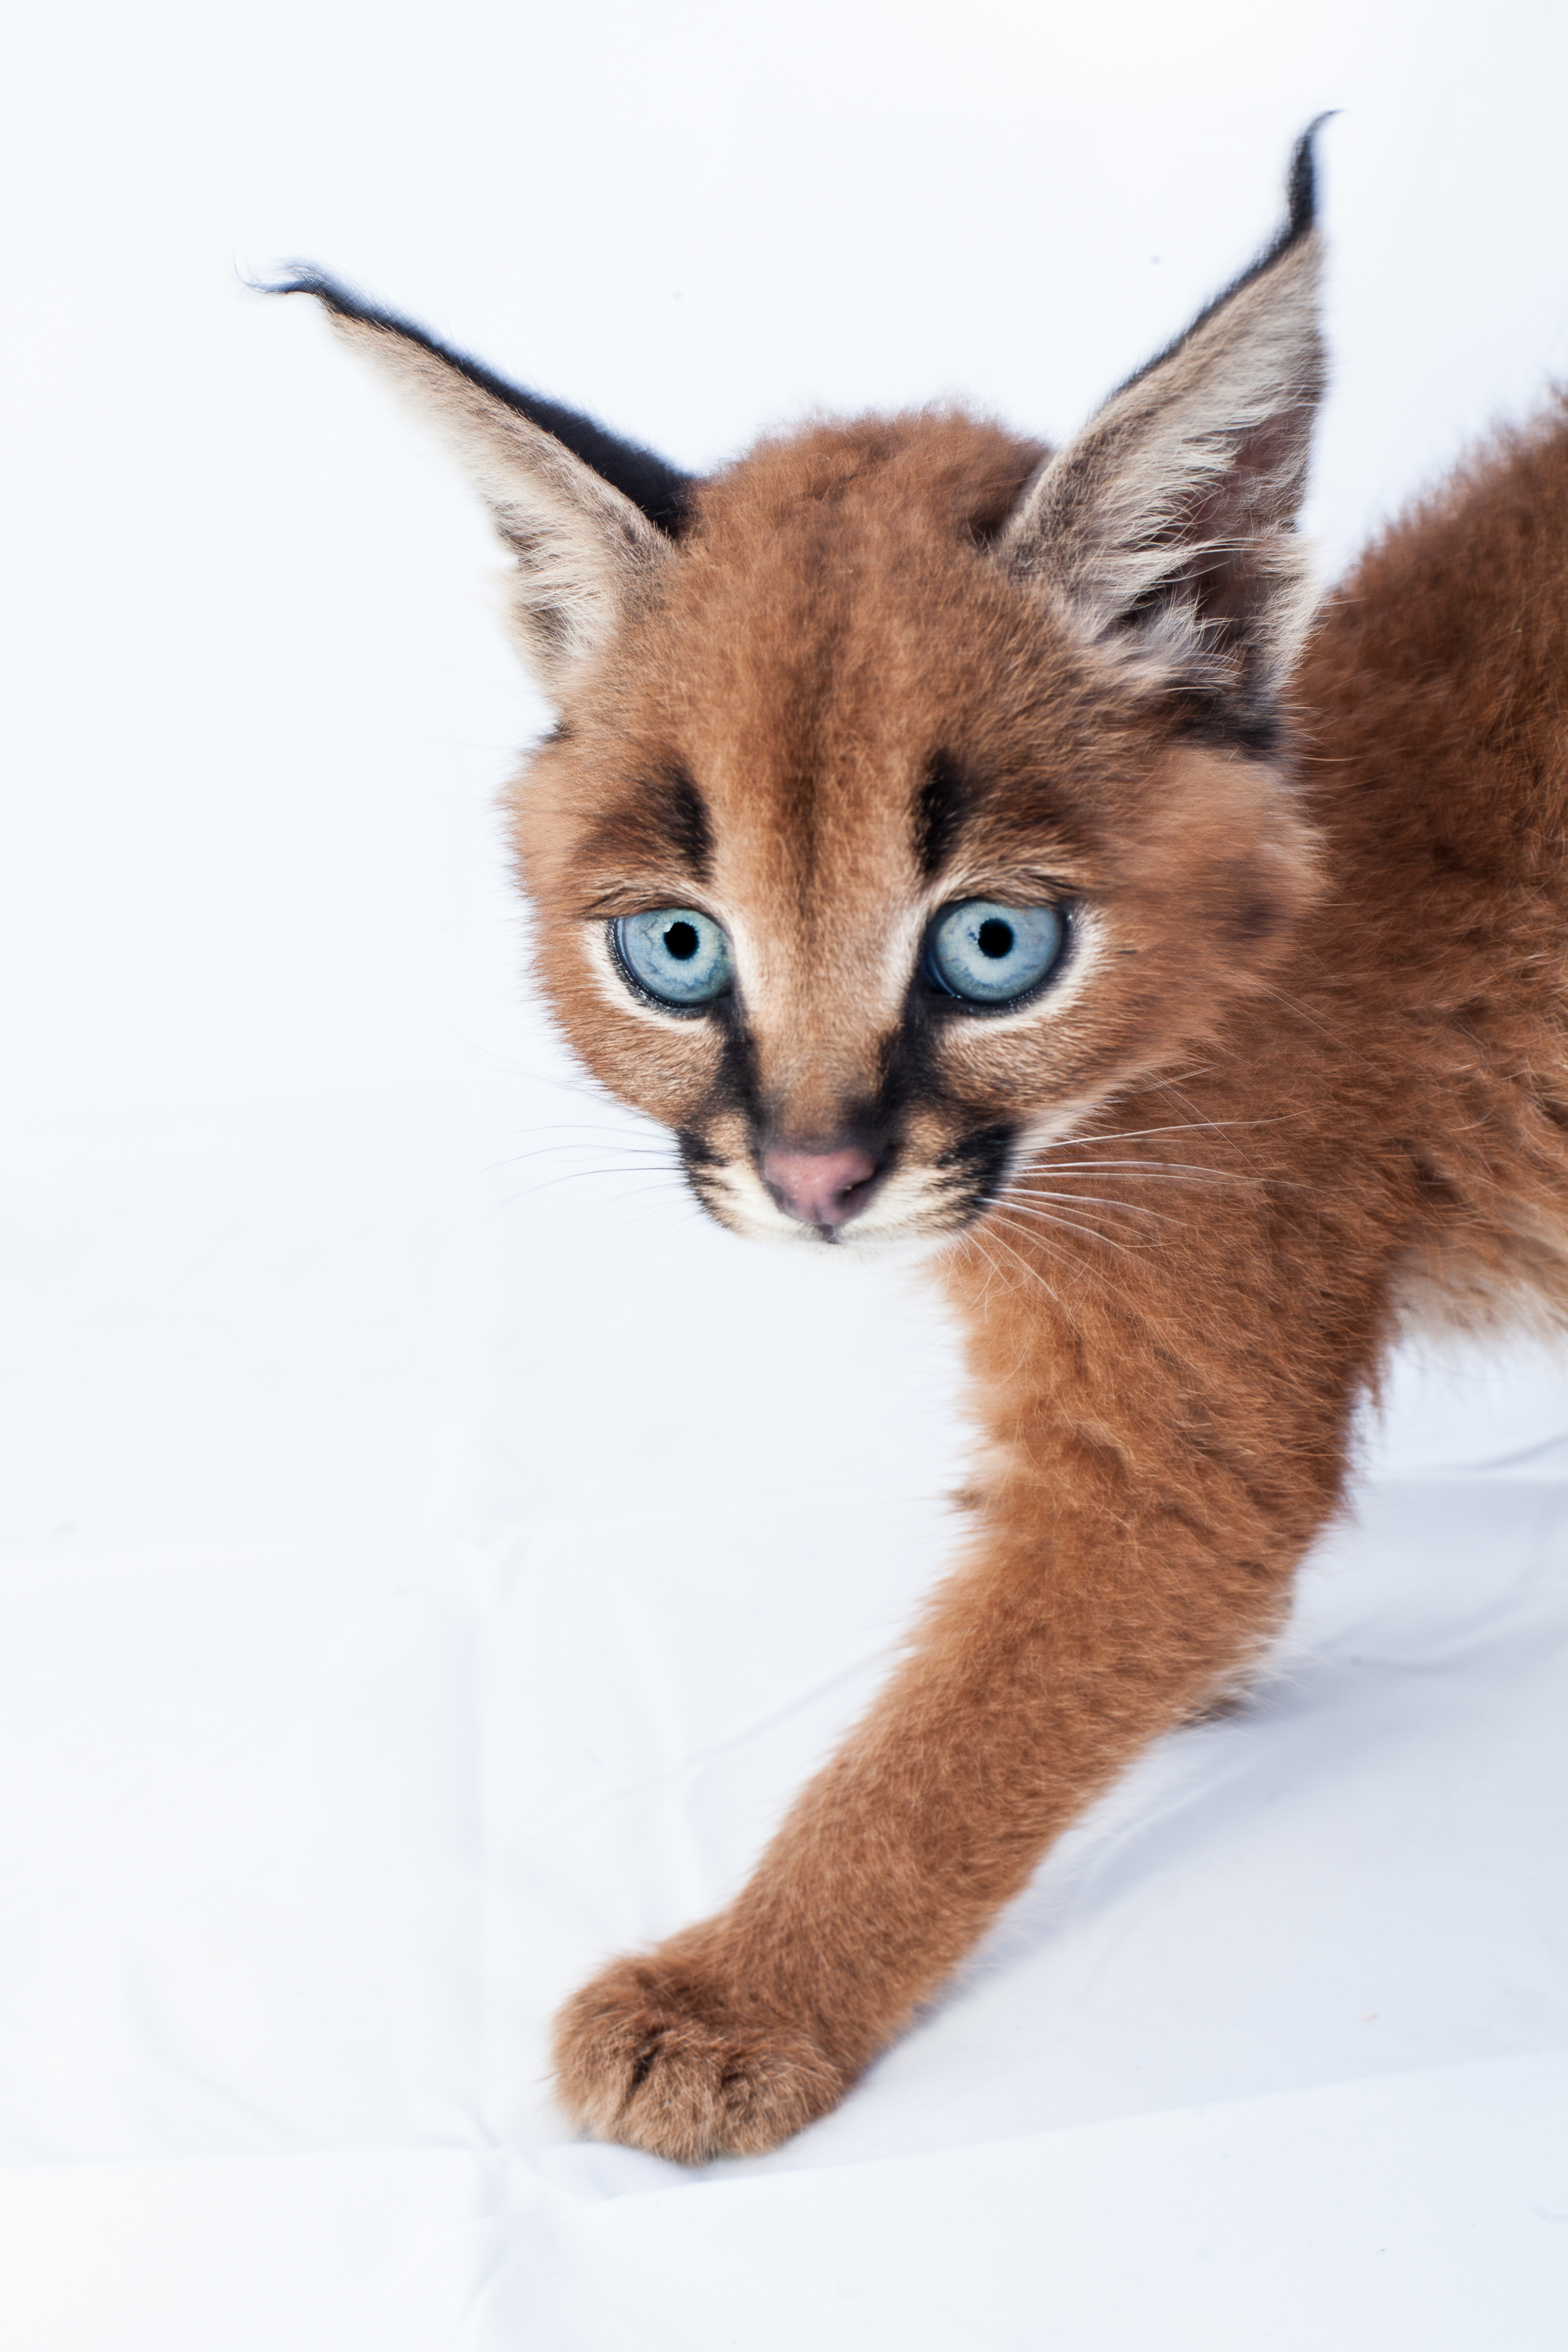 Caracal cat kittens images.